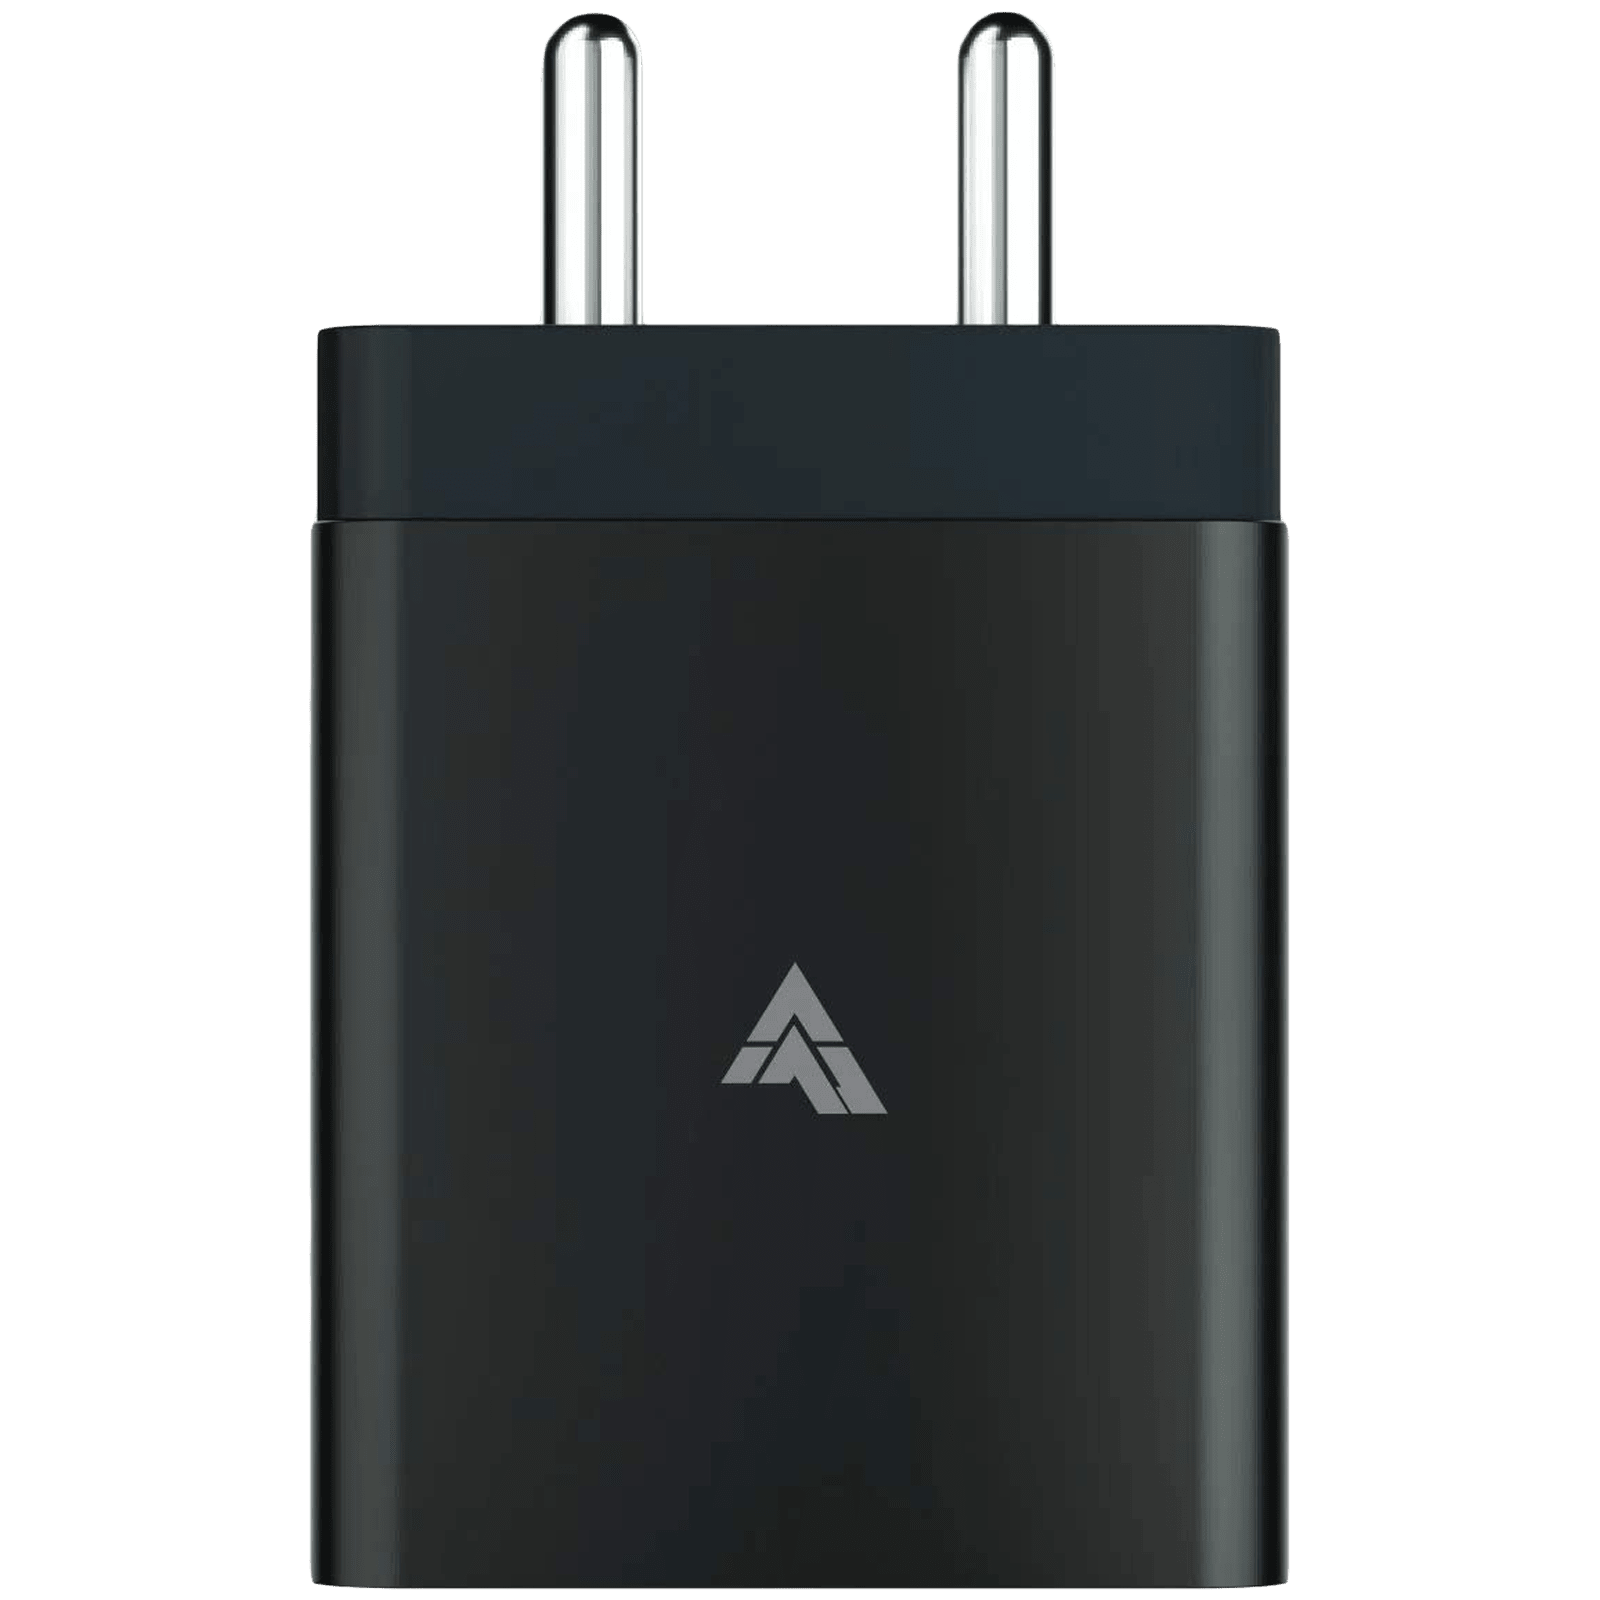 Vaku Luxos 42 Watts/12 Amps 2-Port USB Type-C and Power Delivery Wall Charging Adapter (Fast Charging Capability, 42WPD, Black)